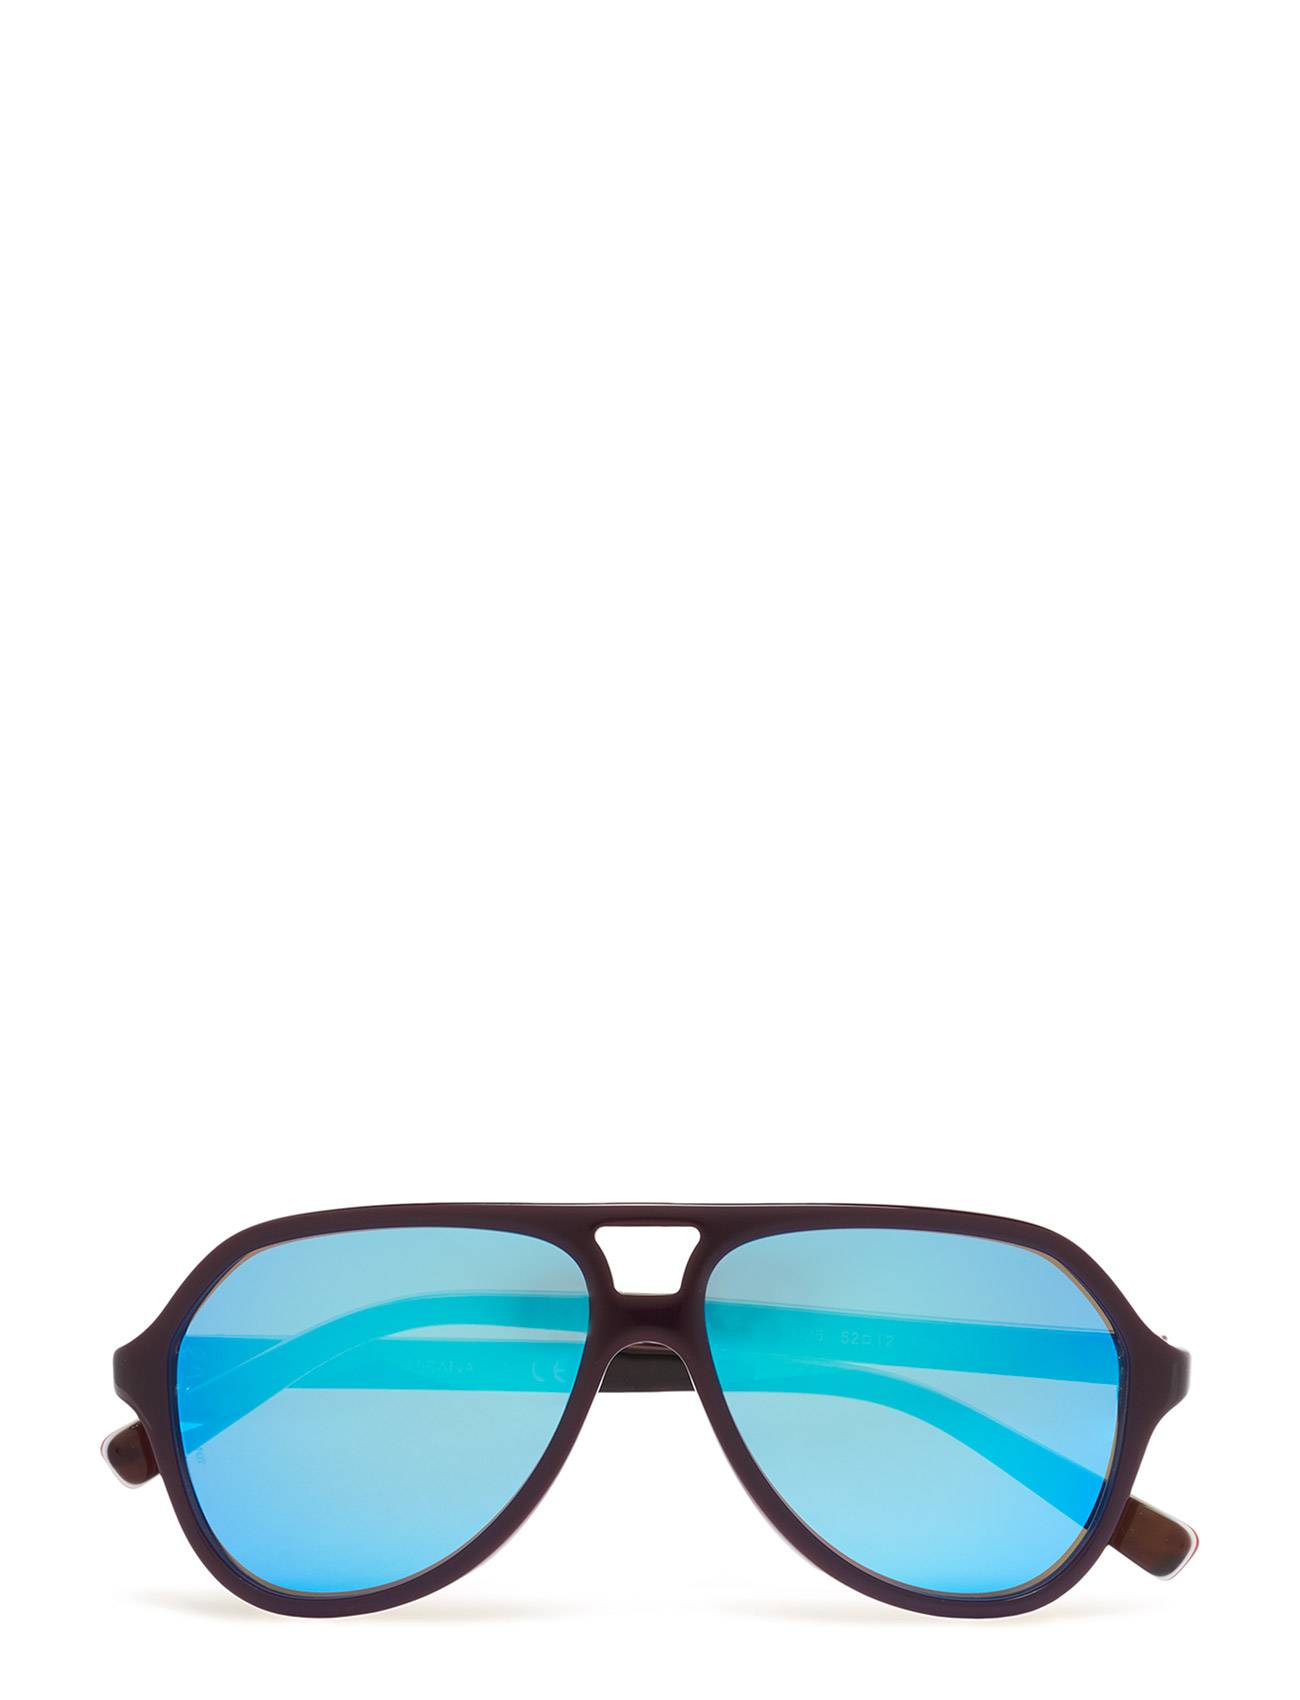 Dolce & Gabbana Sunglasses Stripes Special Project